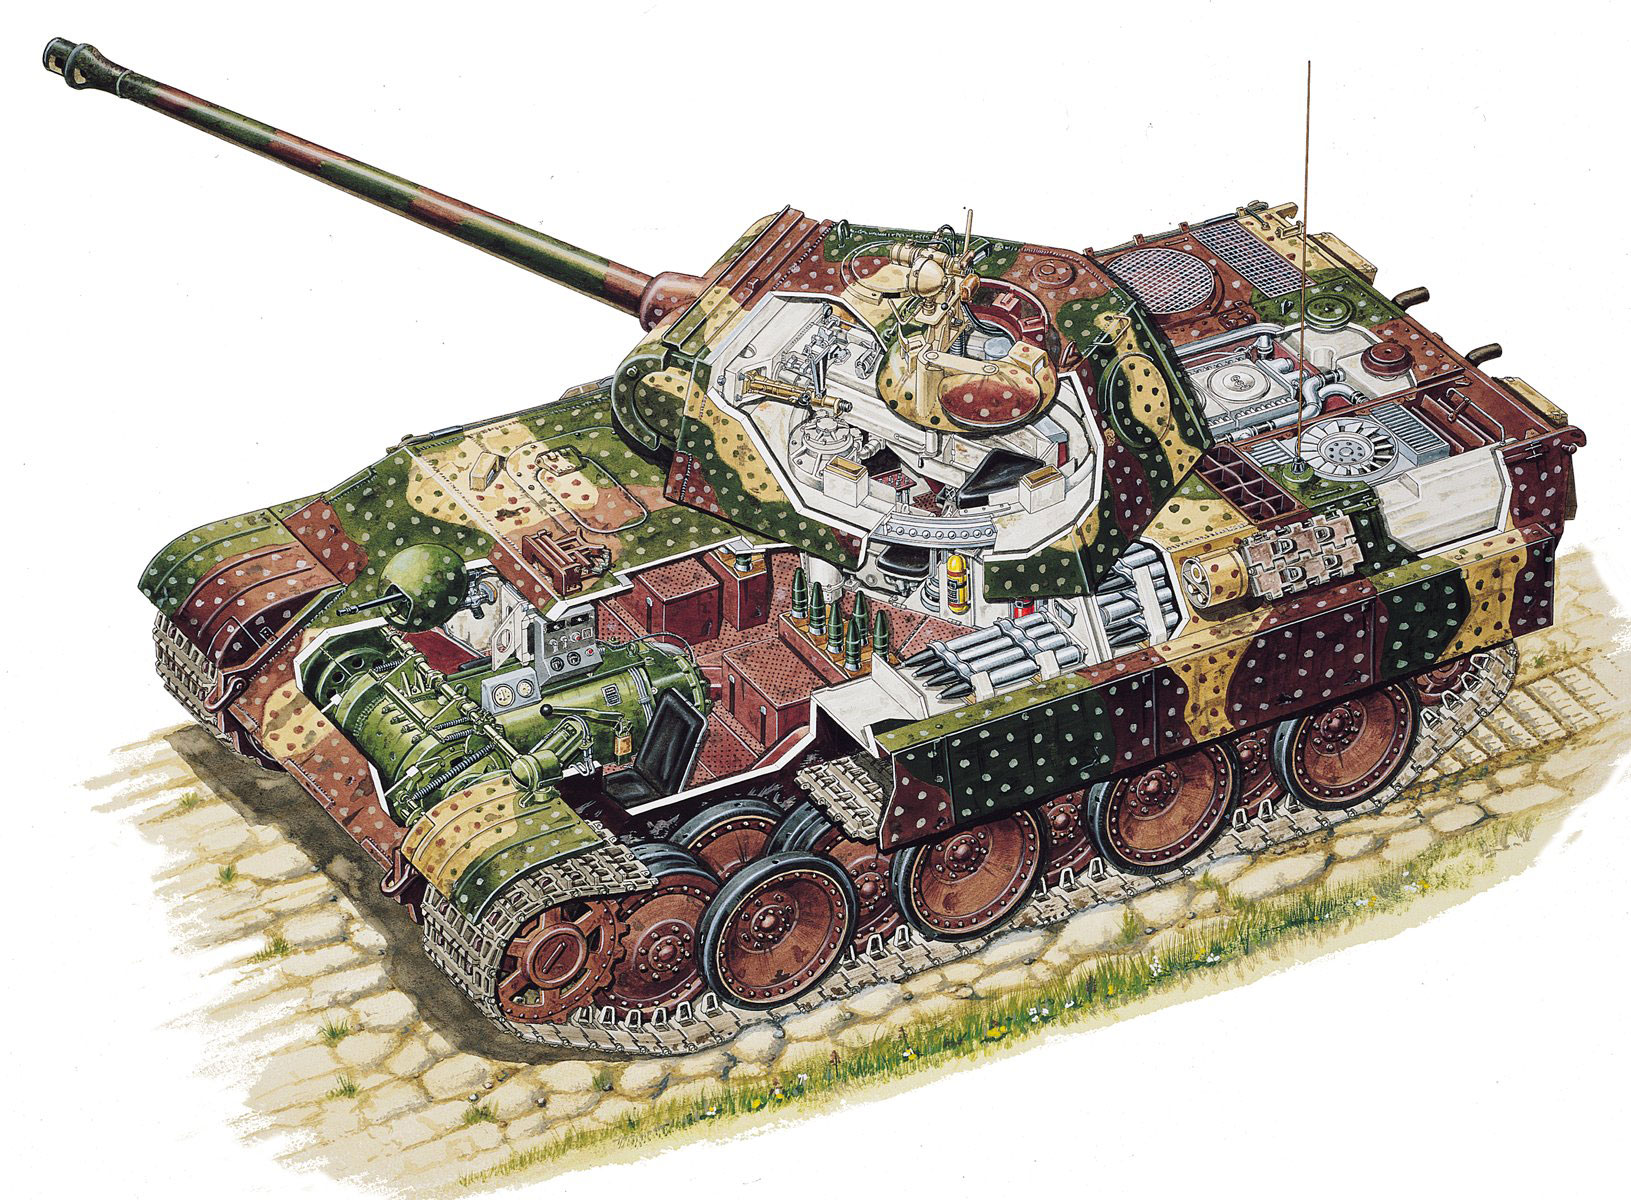 Panther tank cutaway drawing